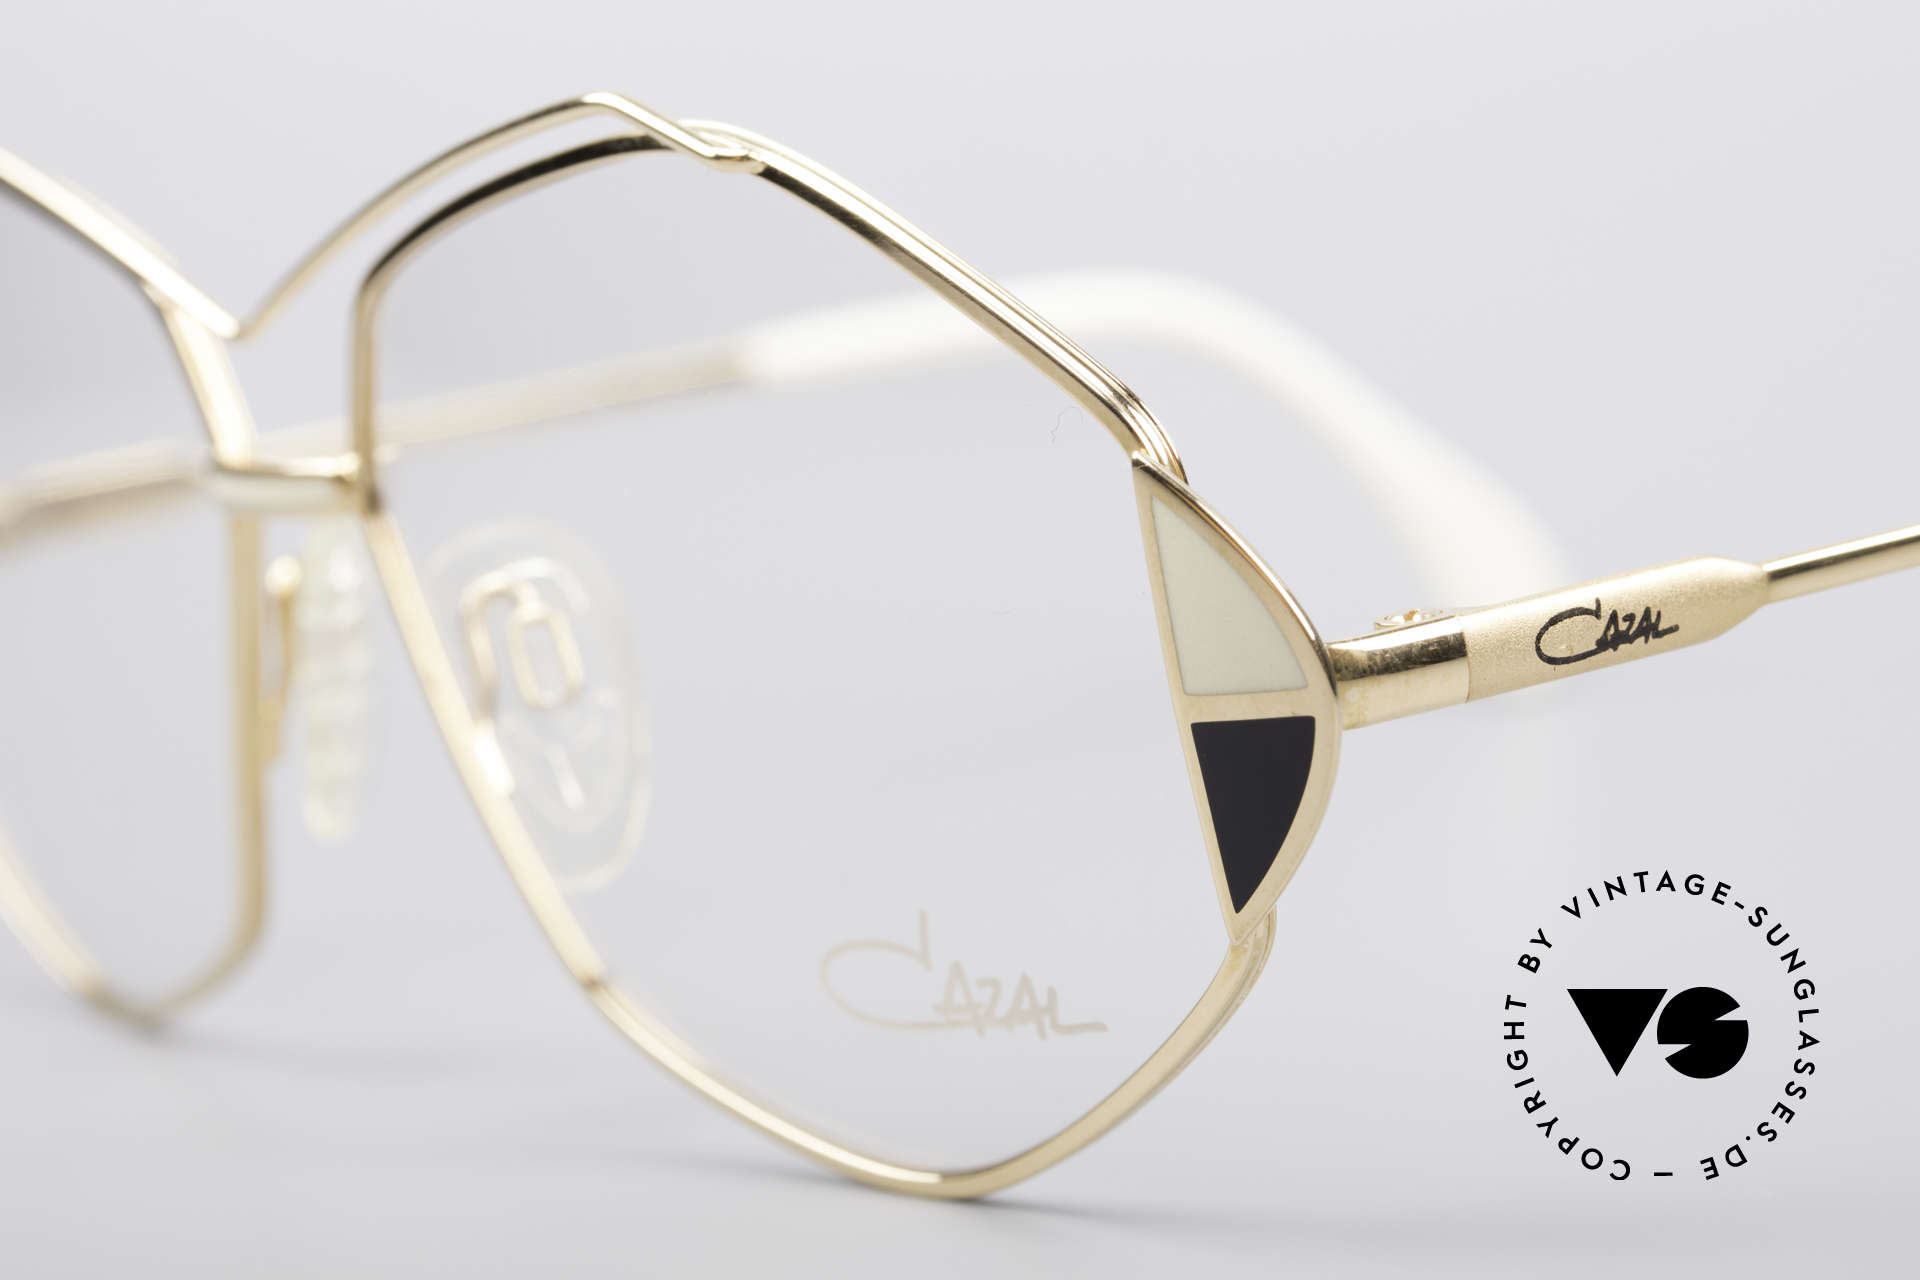 Cazal 233 Vintage West Germany Frame, new old stock (like all our vintage Cazal glasses), Made for Women